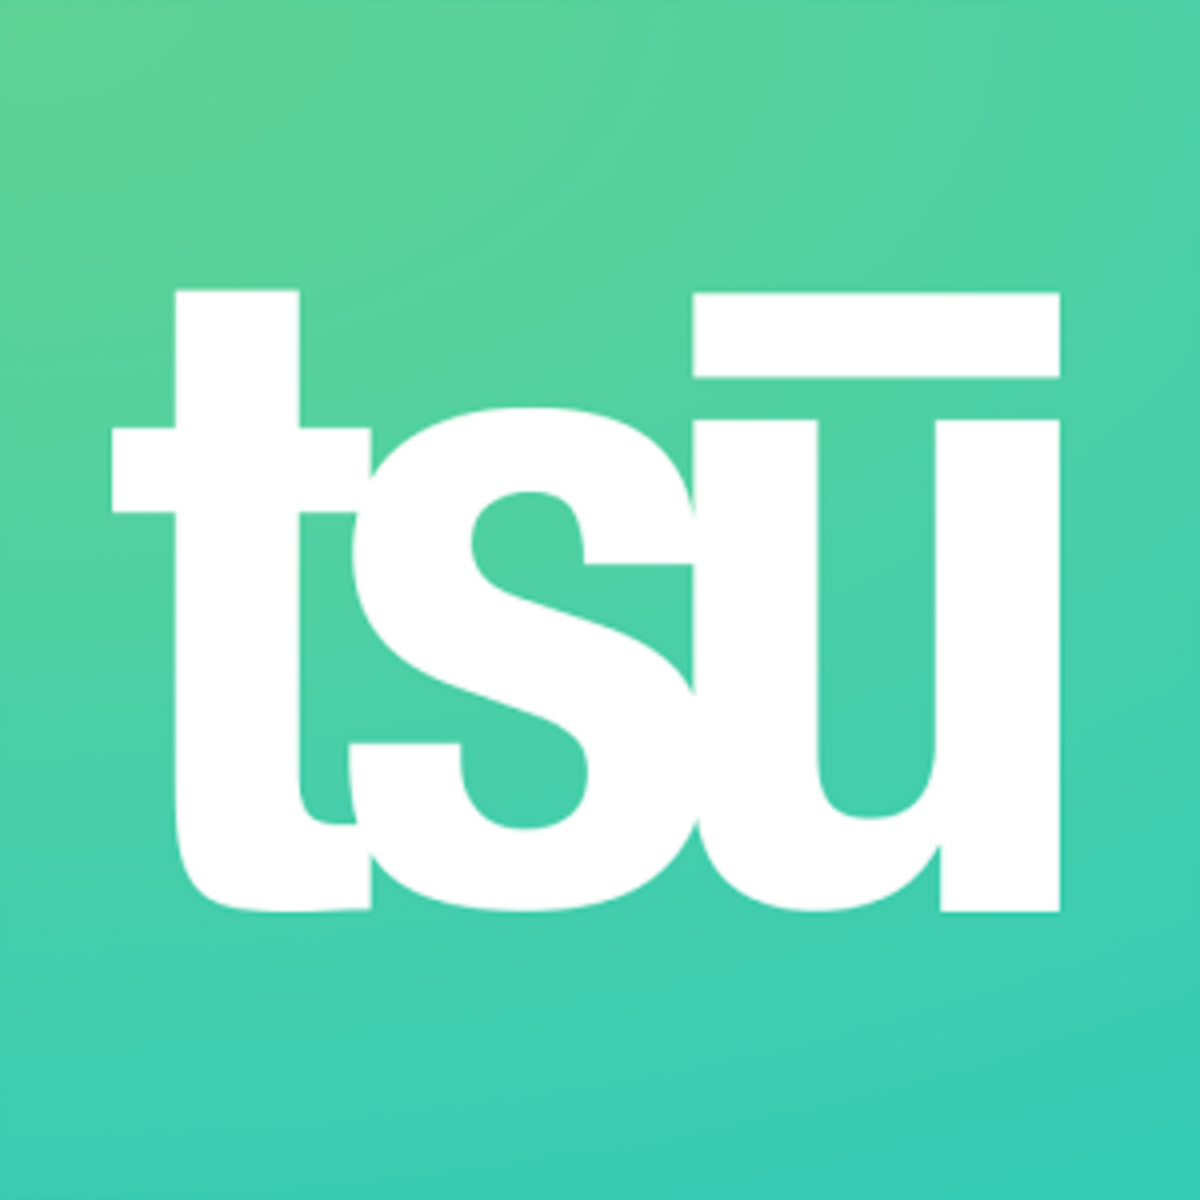 Tsu - The social media site that pays you to post content